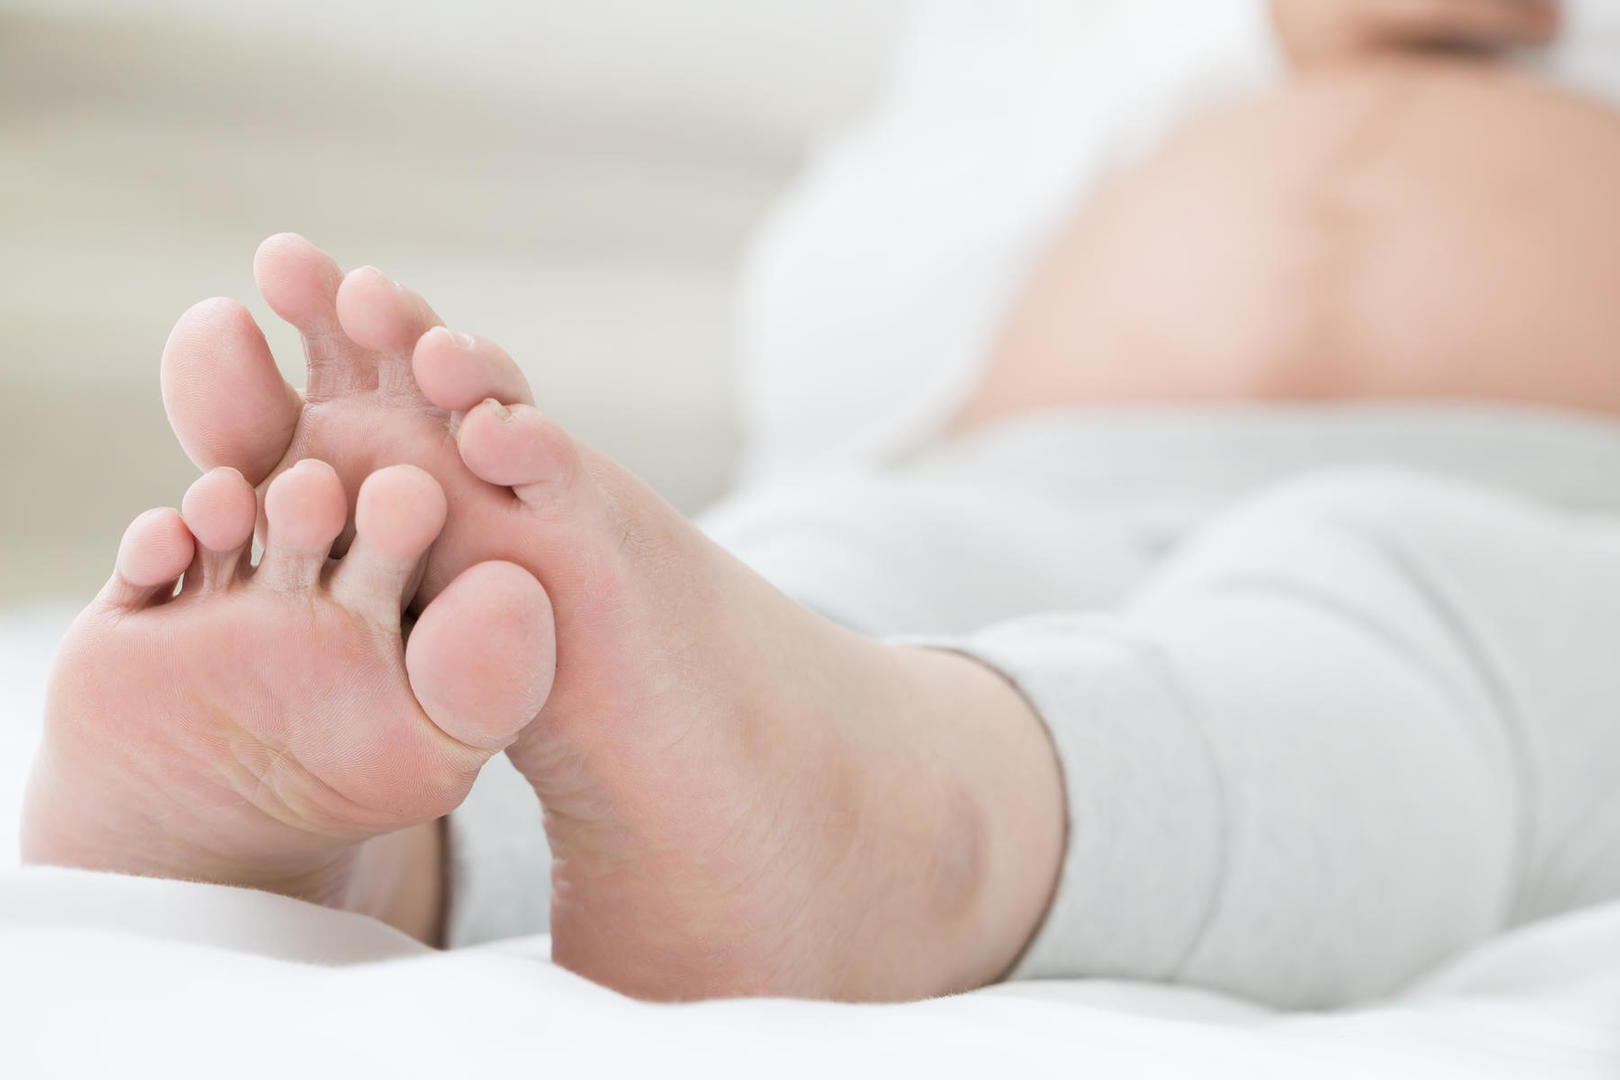 Swollen Feet During Pregnancy